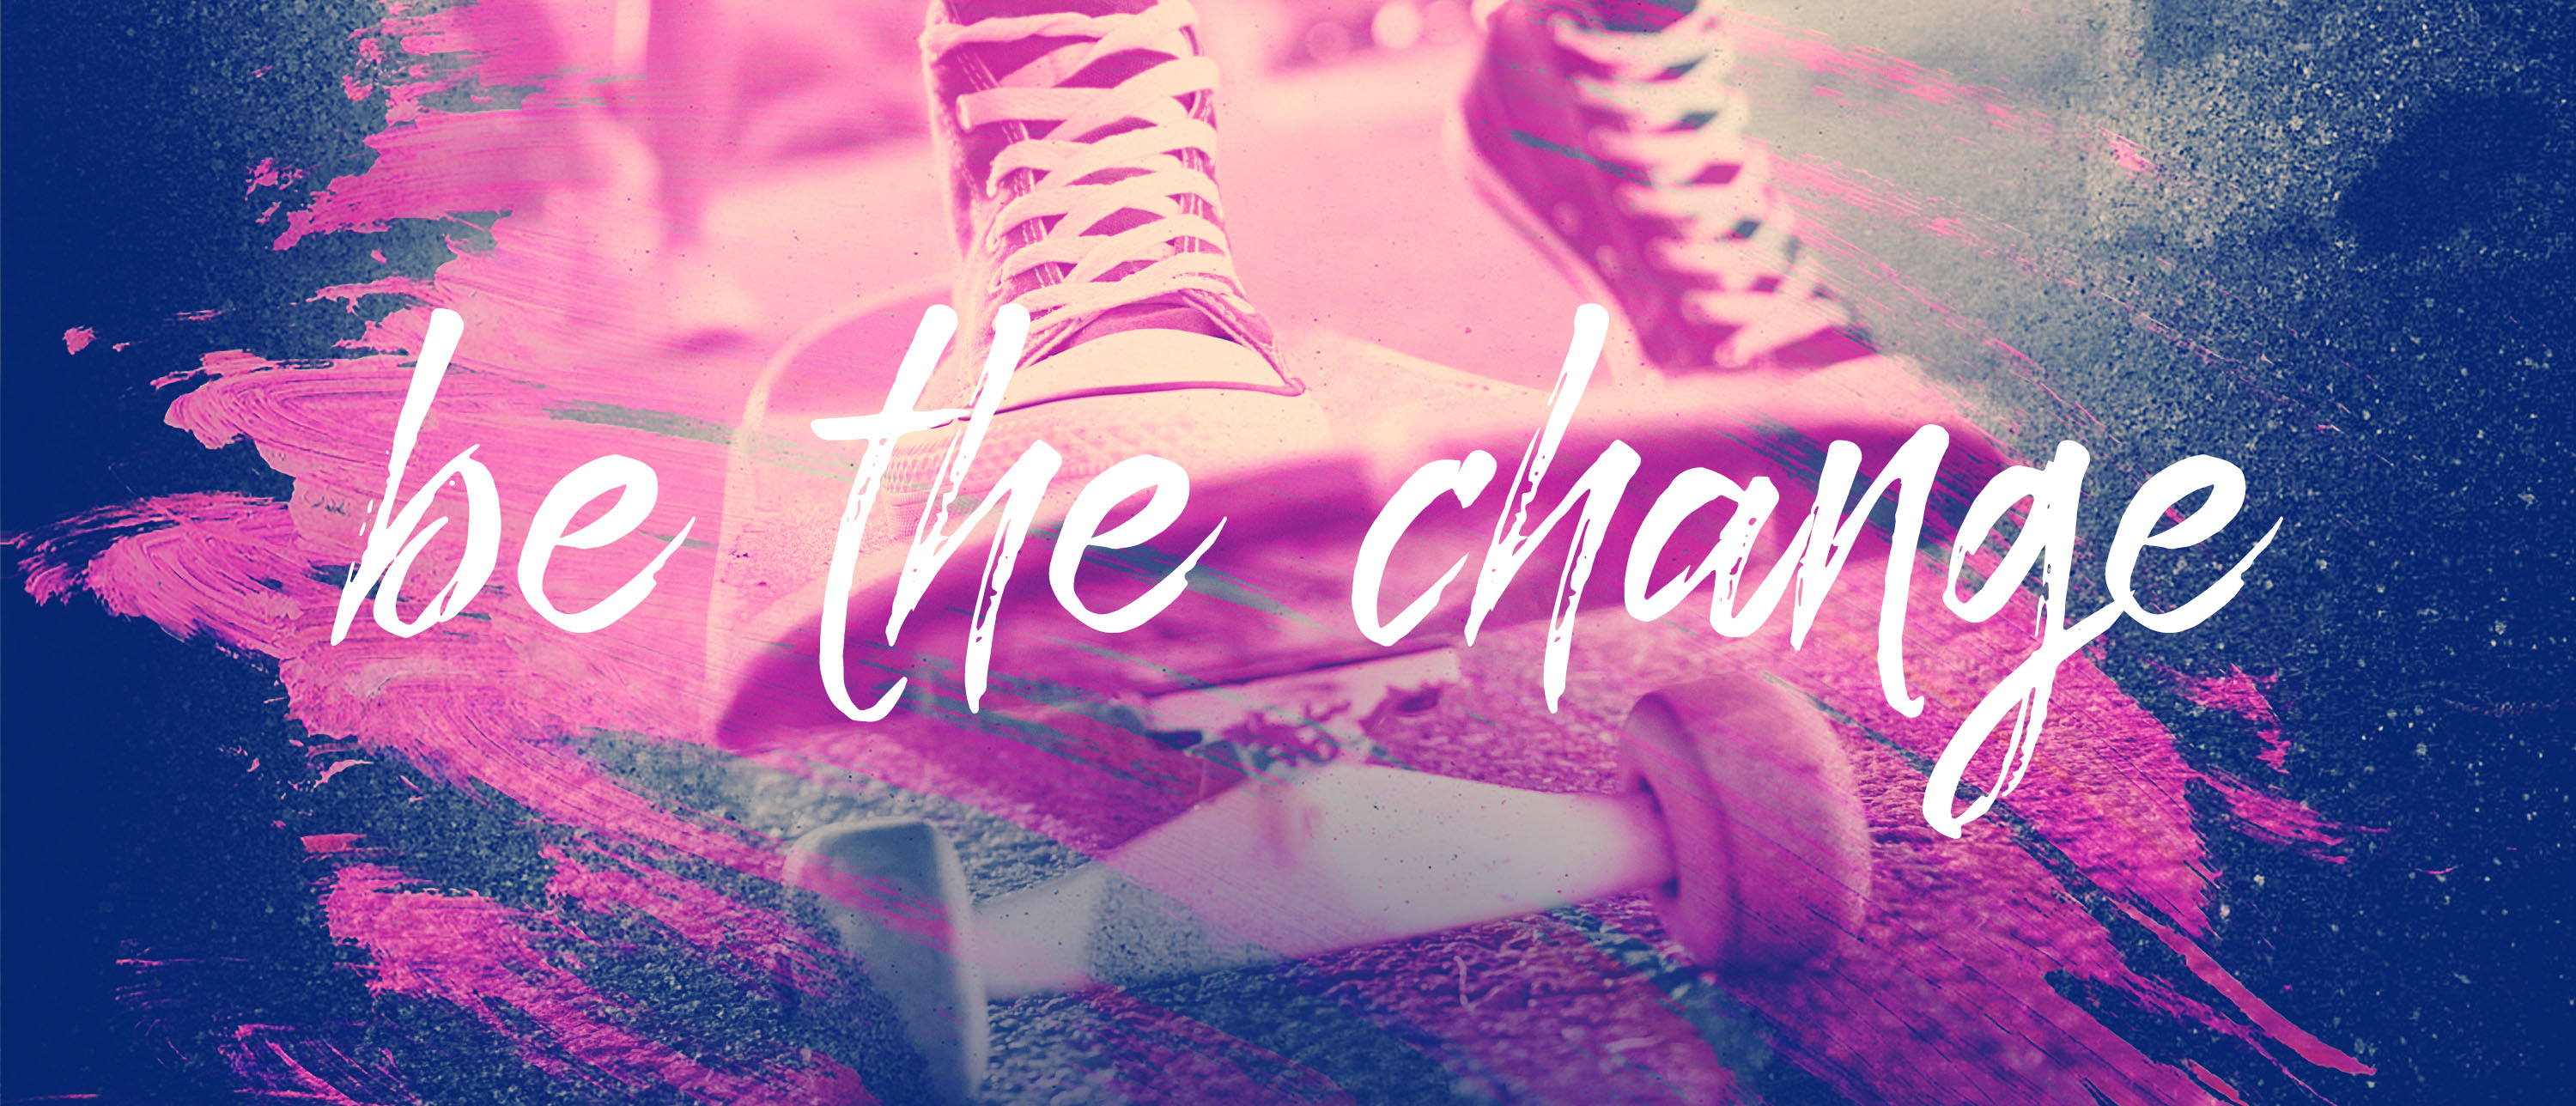 be the chnage2